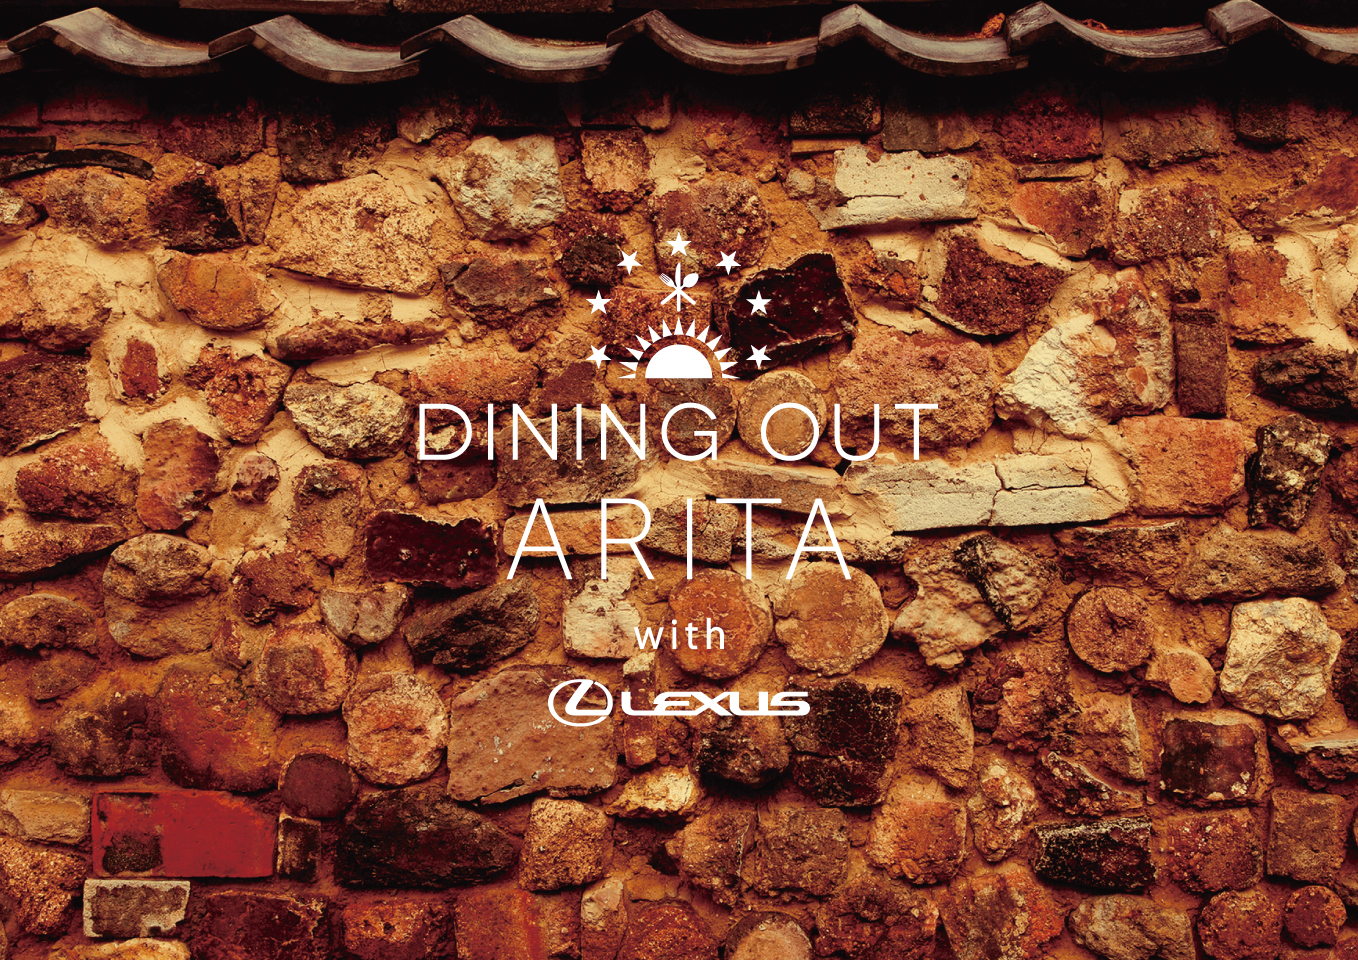 112_dining_out_arita